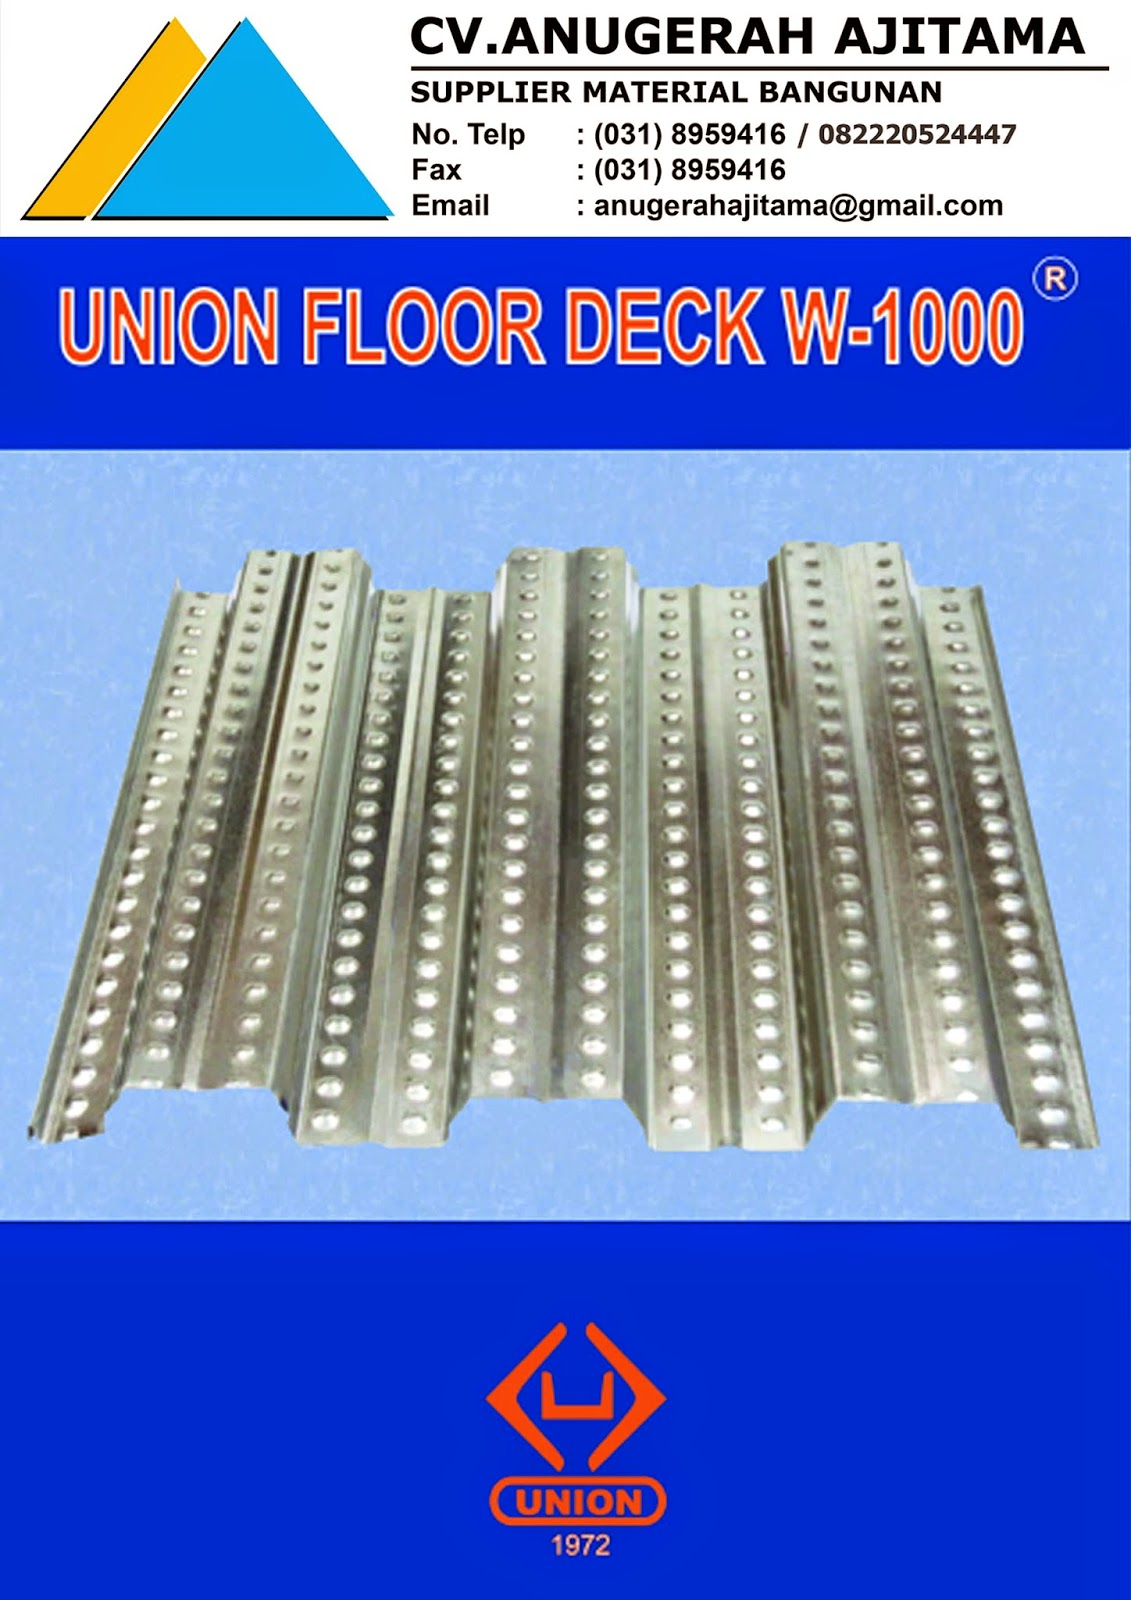 PRODUK UNION FLOOR DECK W-1000